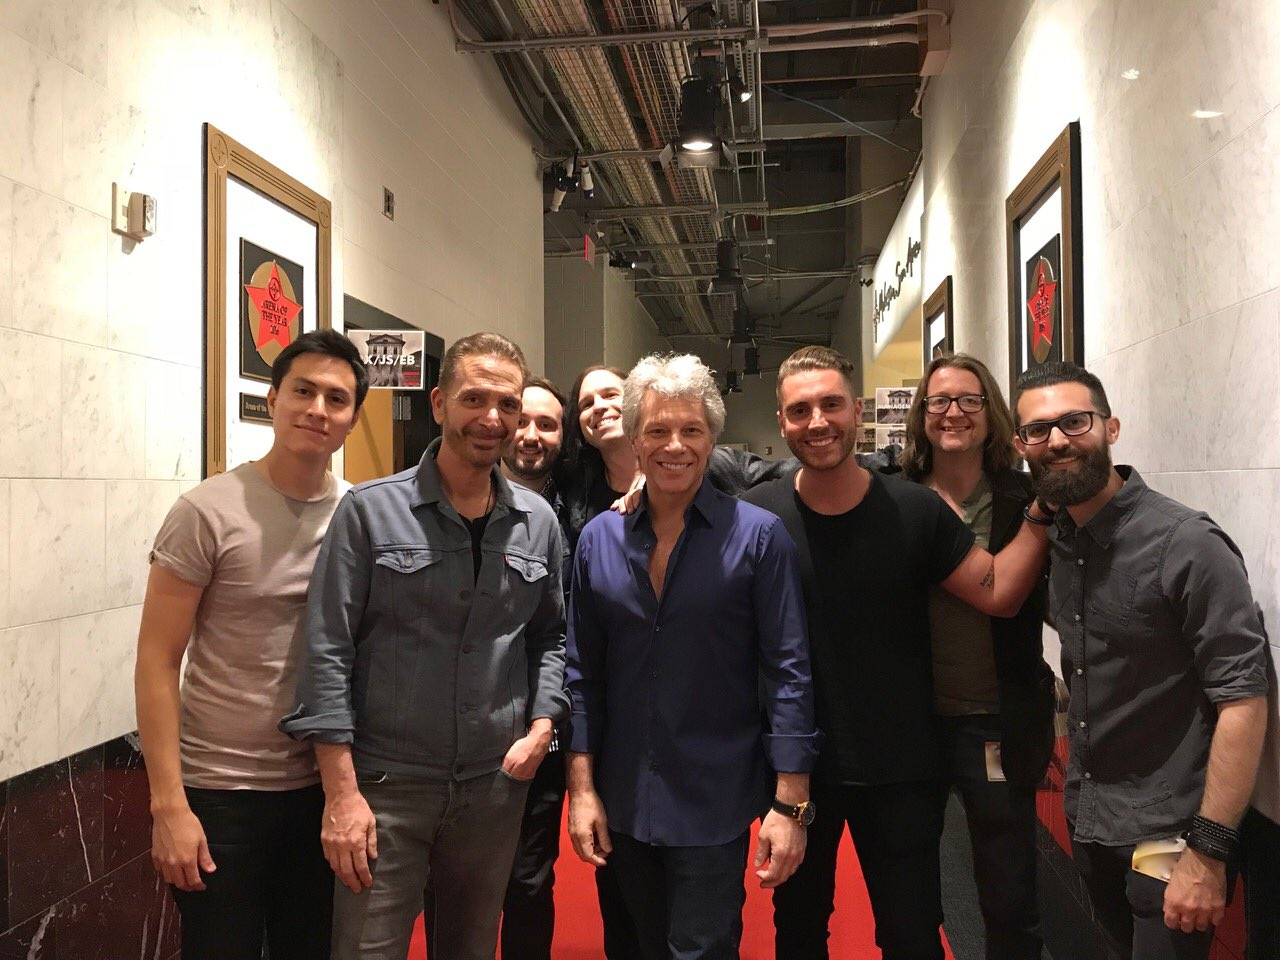 We had a great time in Uncasville ��JBJ with opening artist, @nickfradiani, and the night's setlist. #THINFStour https://t.co/aOlYwXEeqi